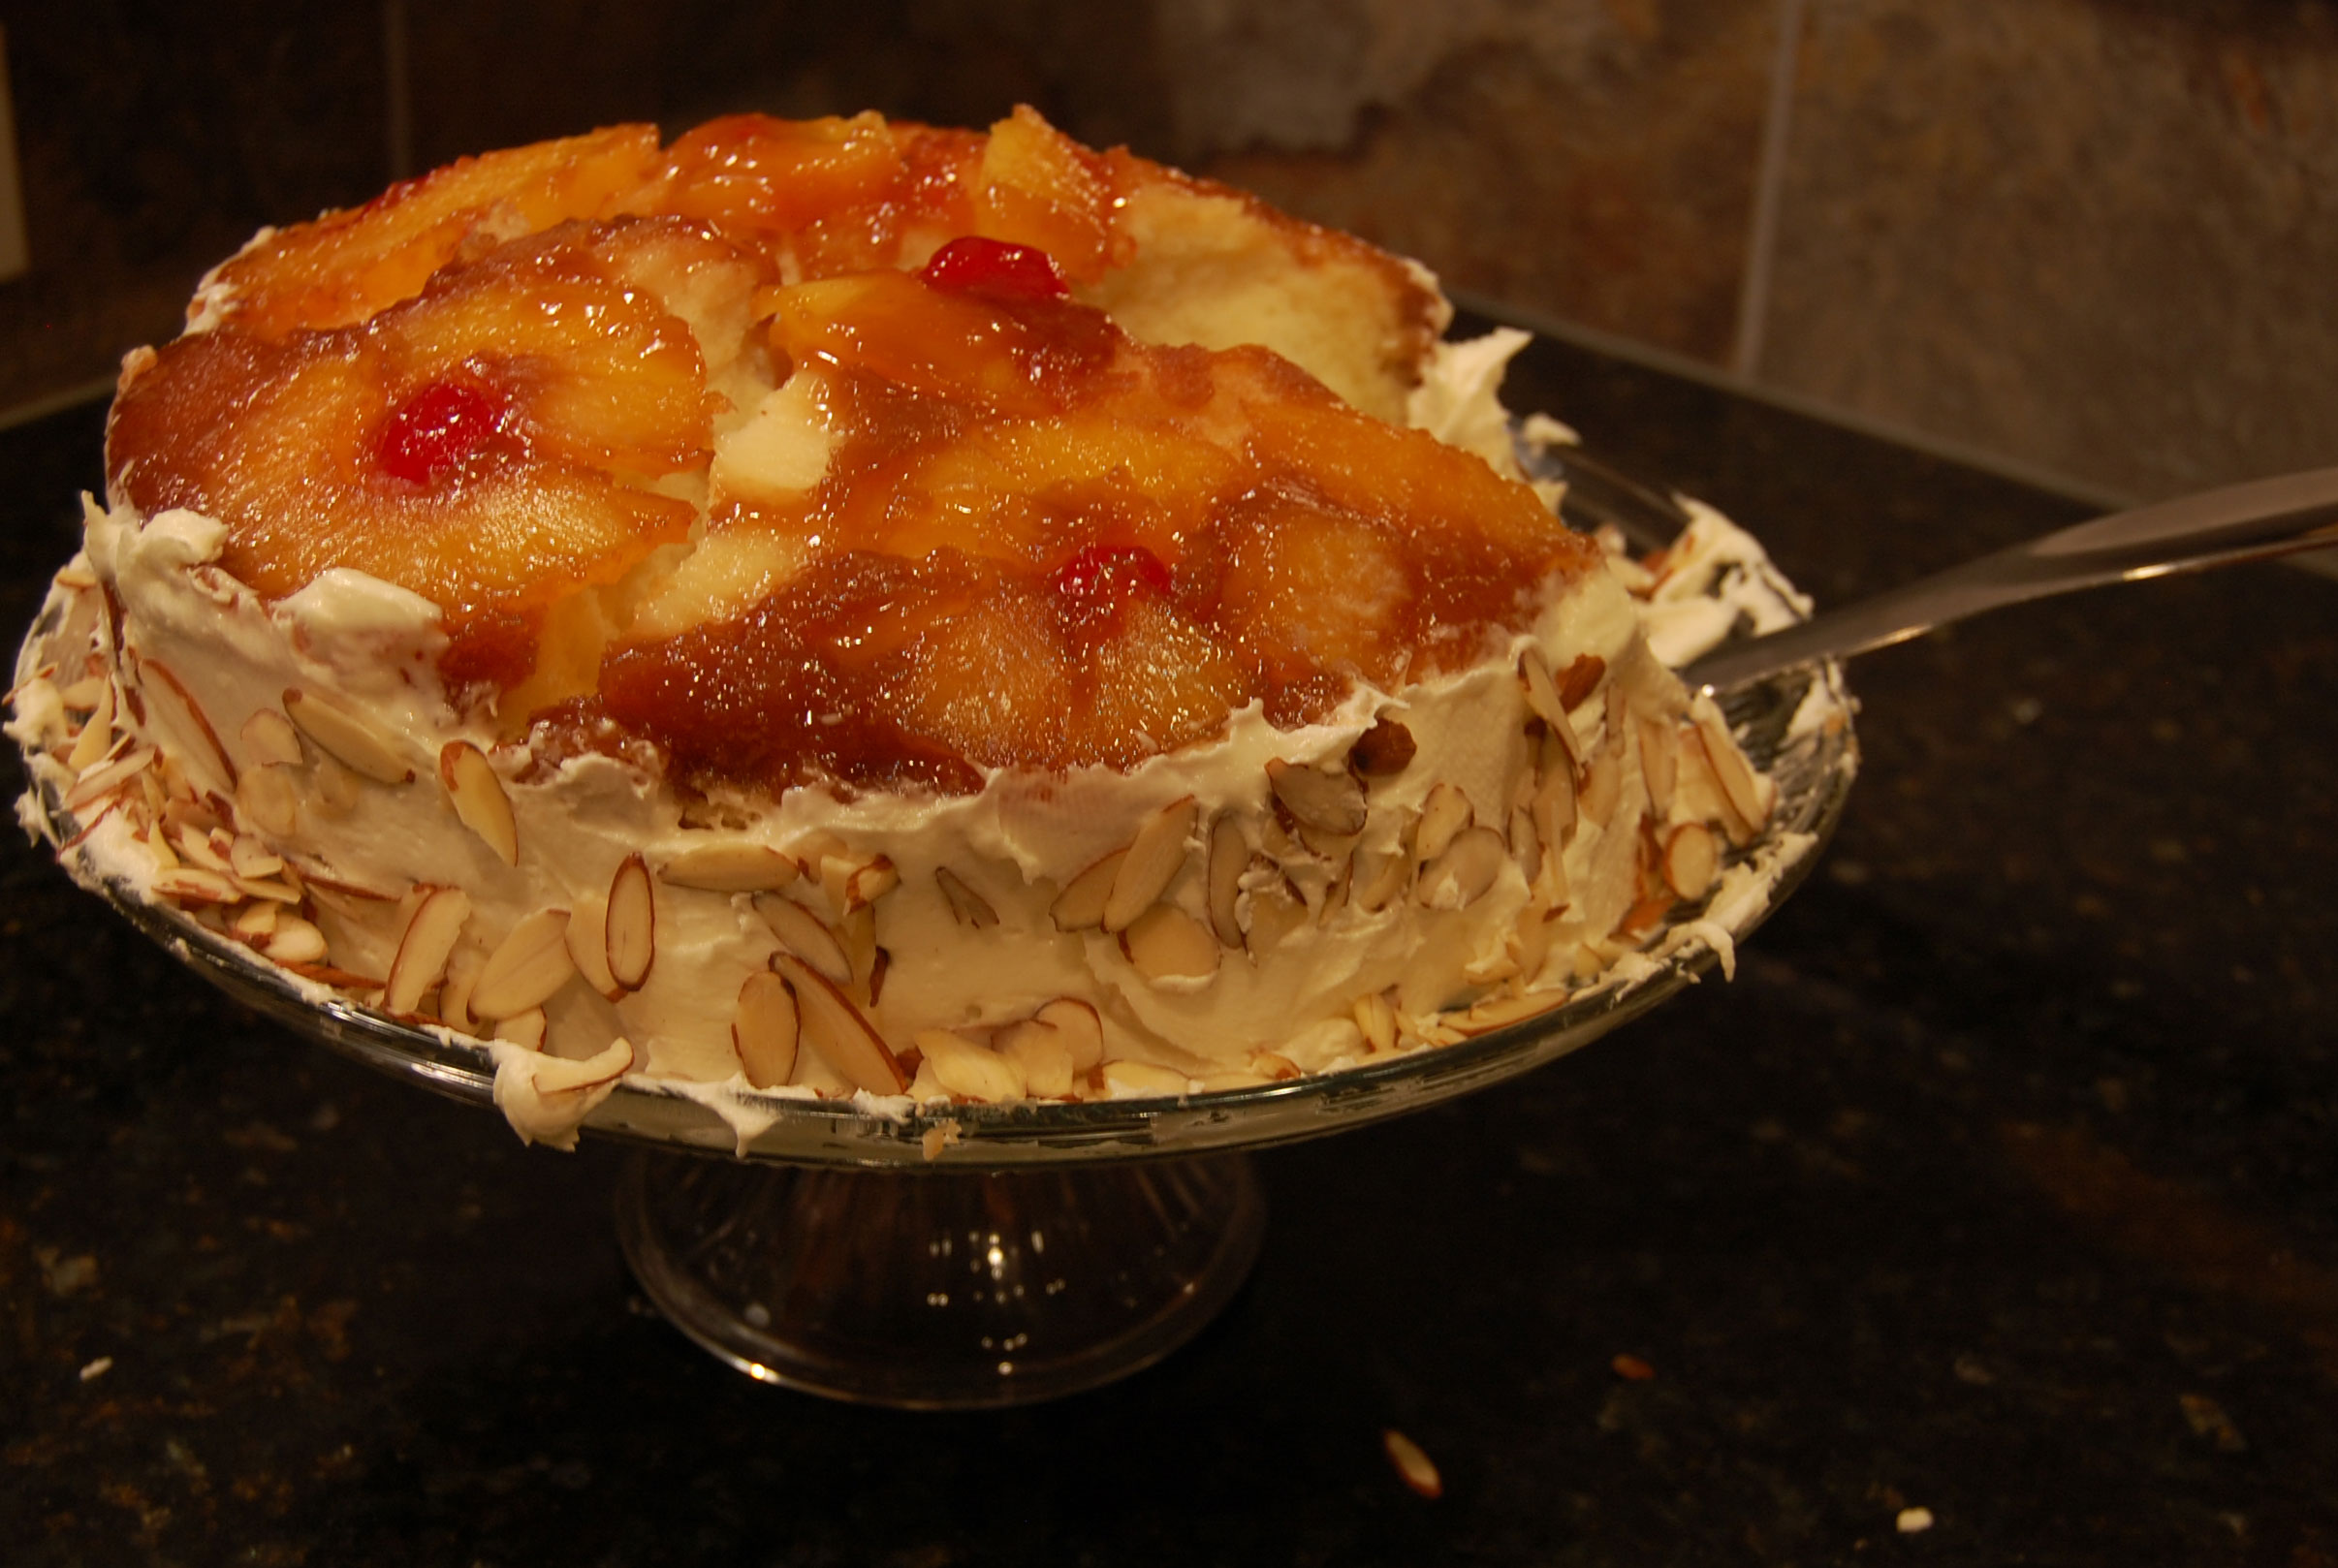 Frosted Almond Pineapple Upside Down Cake Stacked